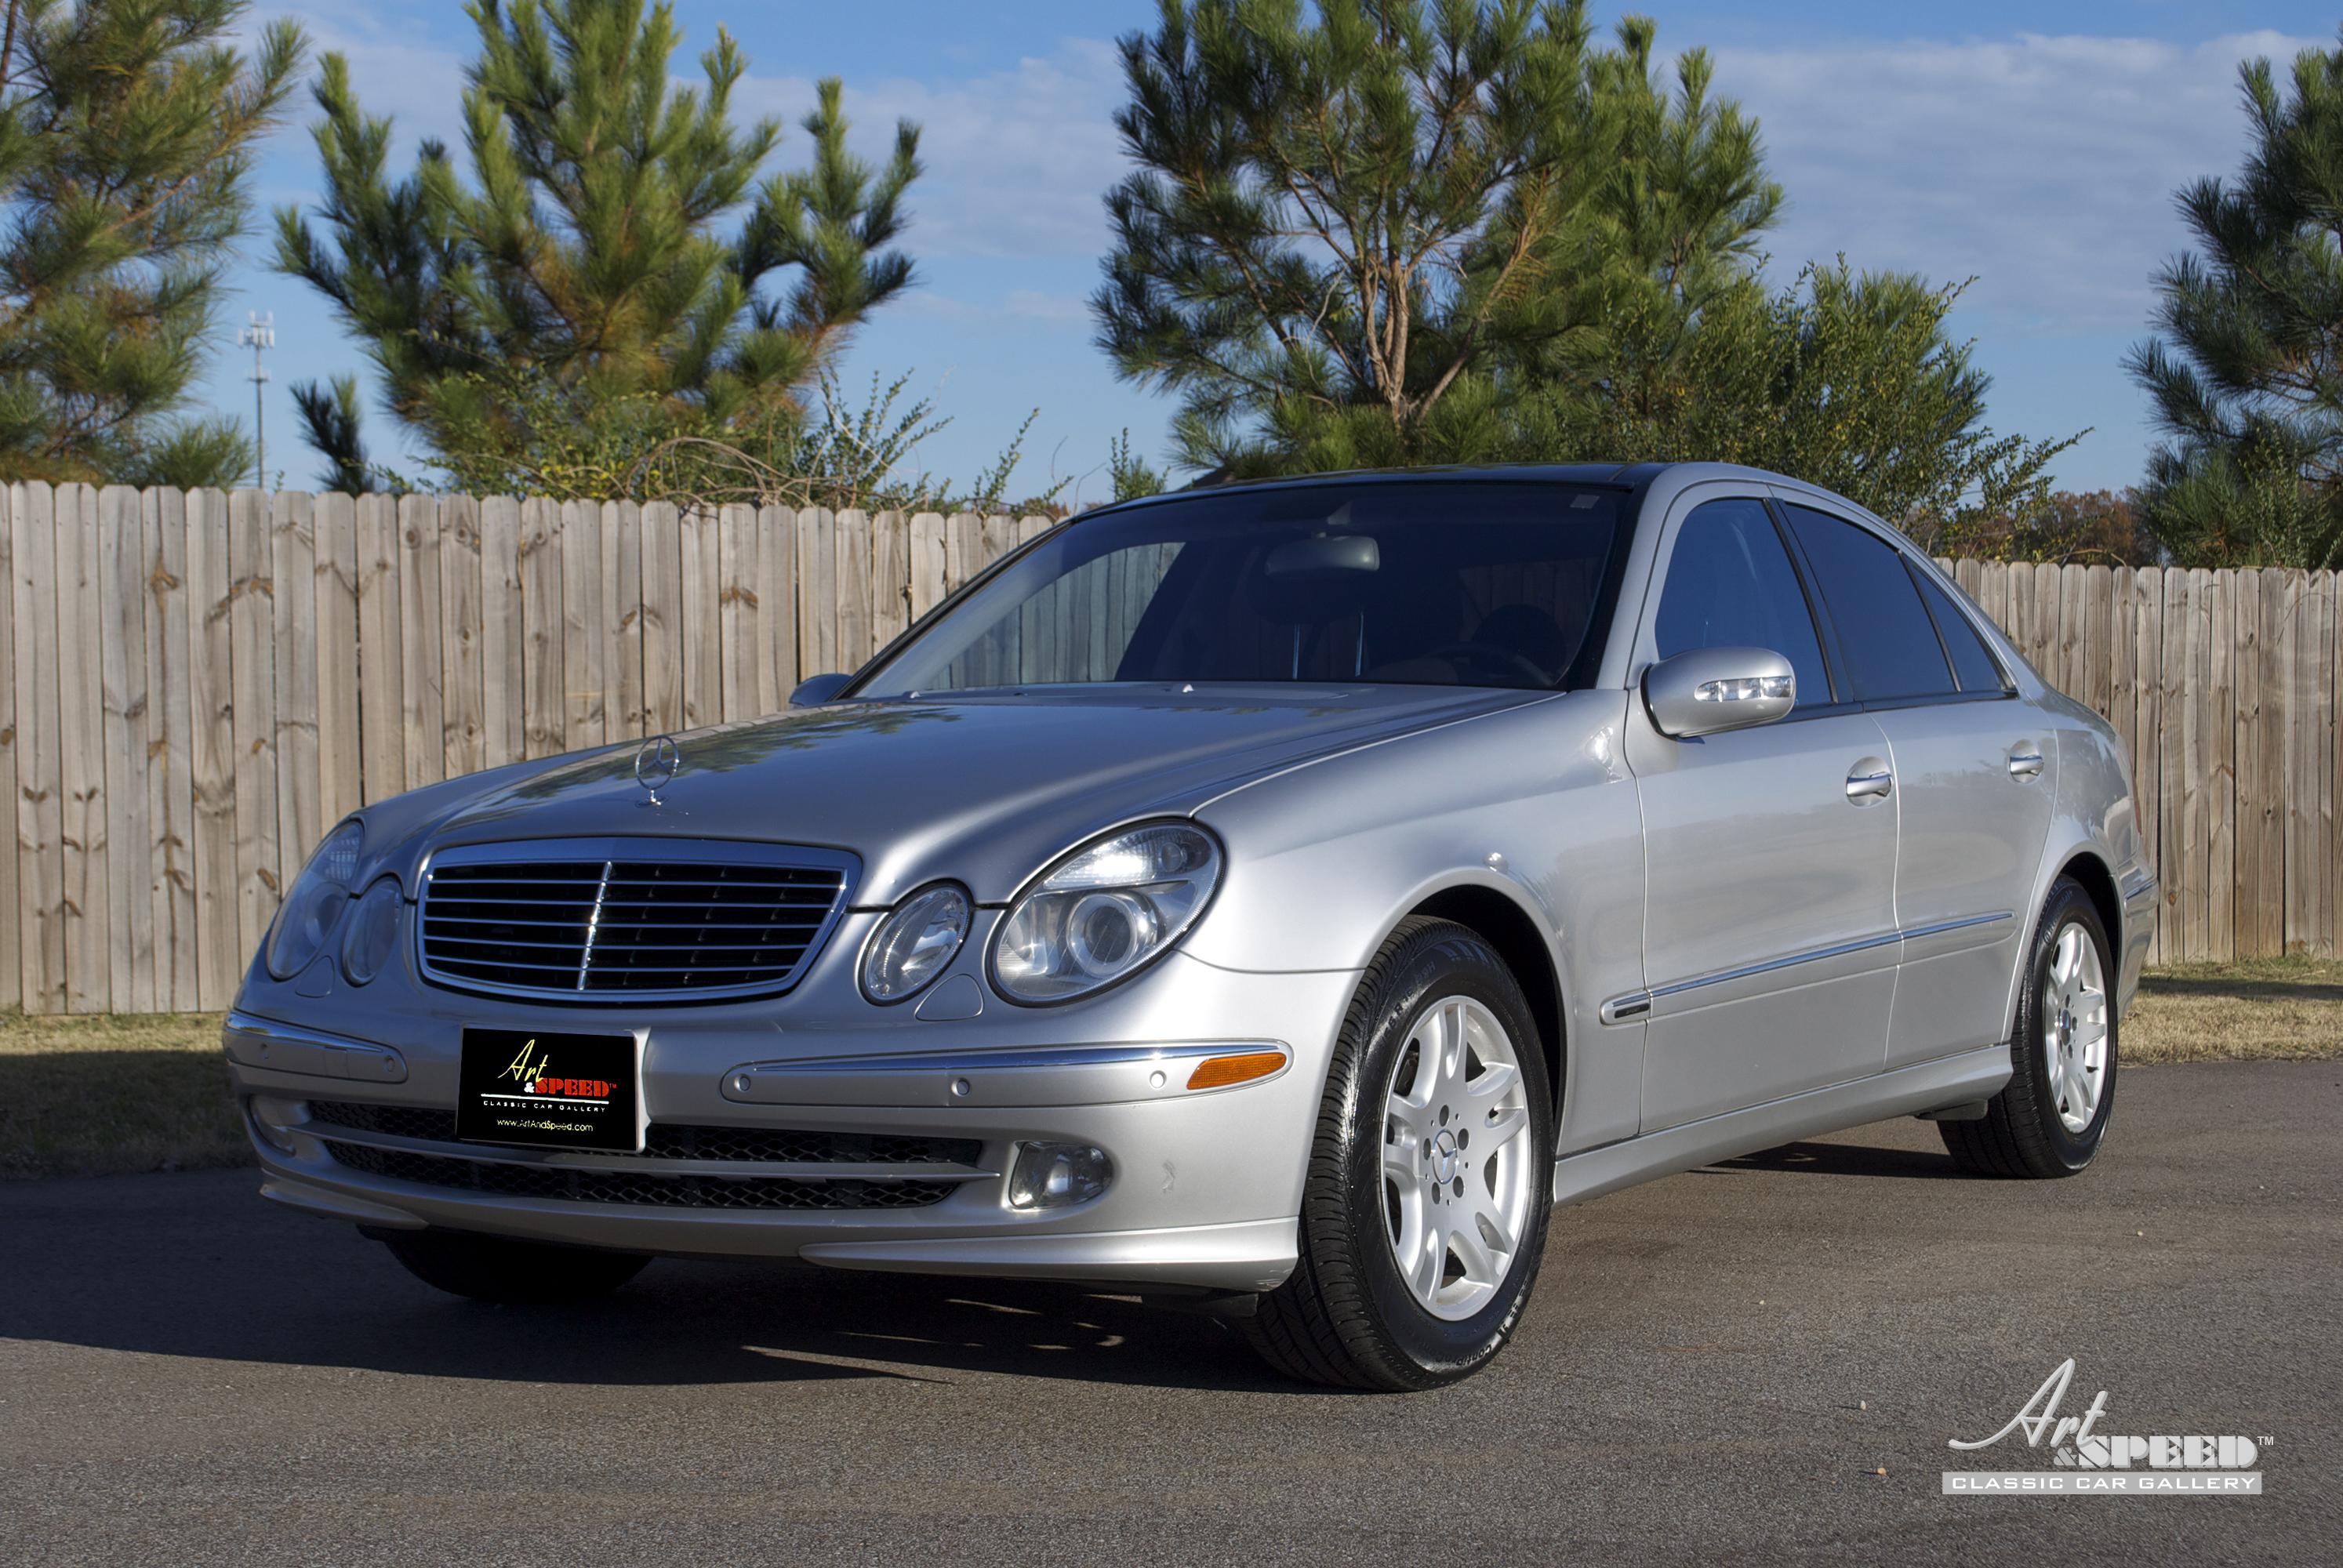 2003 mercedes benz e320 sport art speed classic car for Memphis mercedes benz